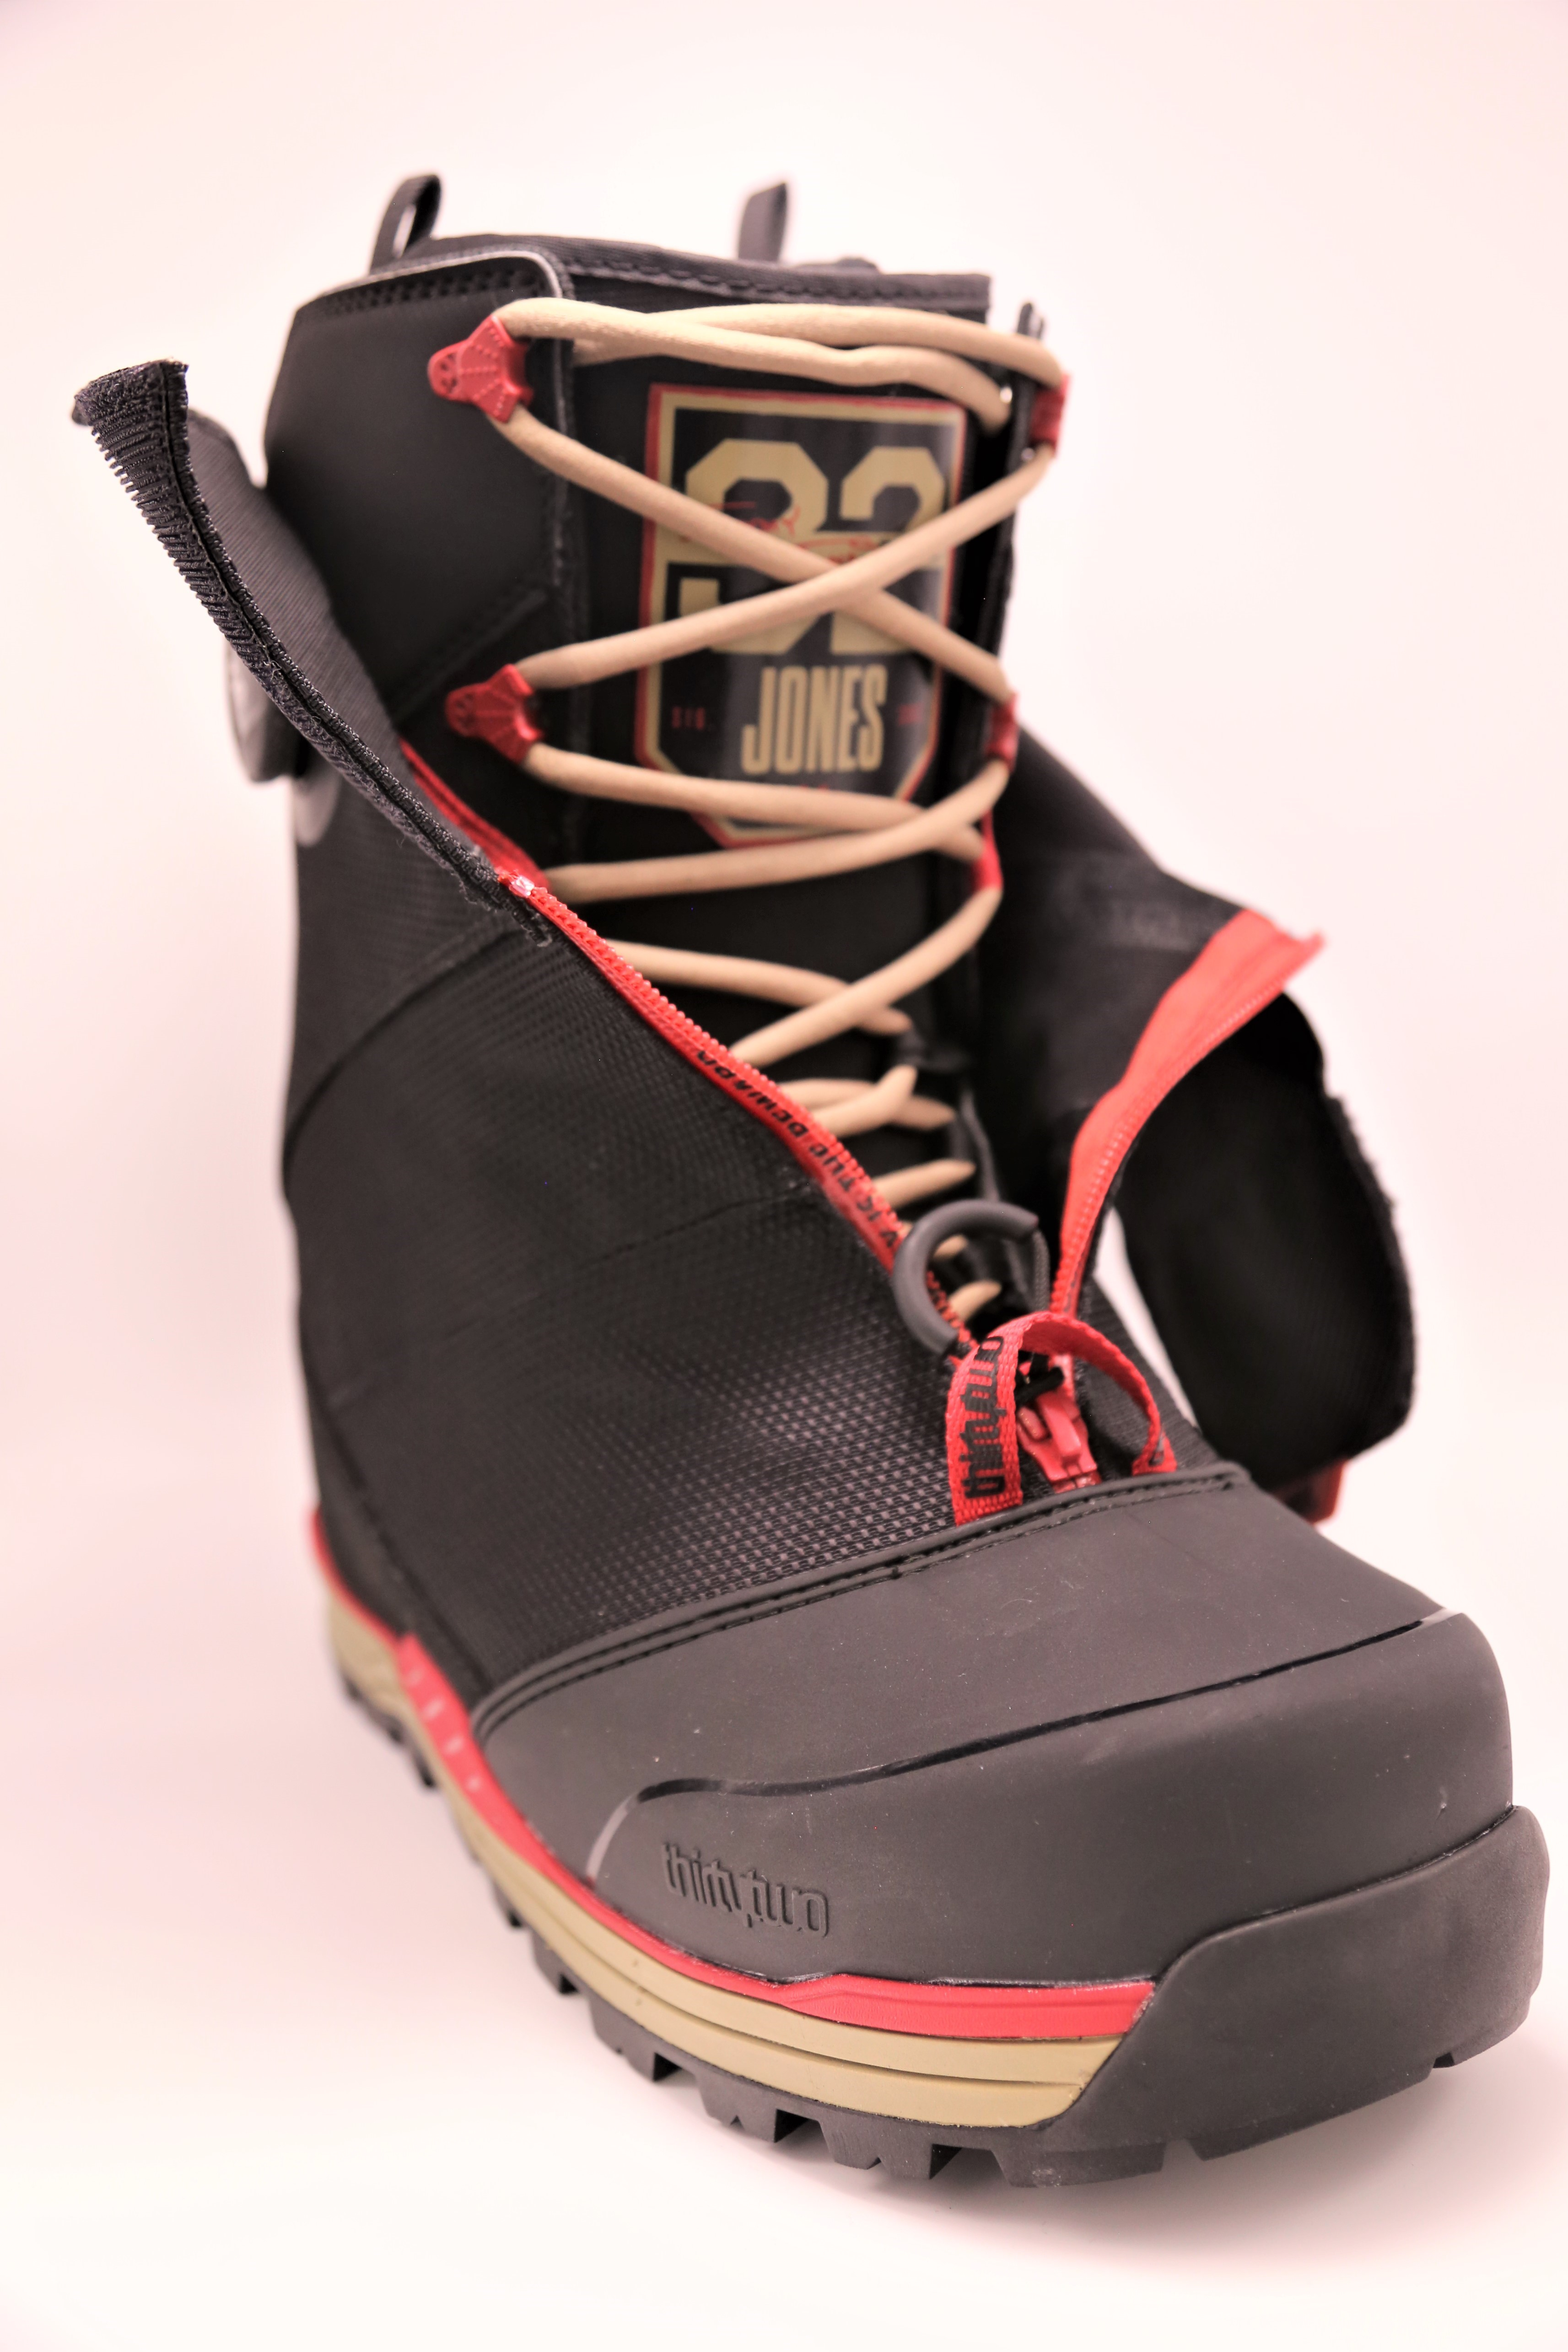 2020 ThirtyTwo Snowboard Boots Preview f36f836a5